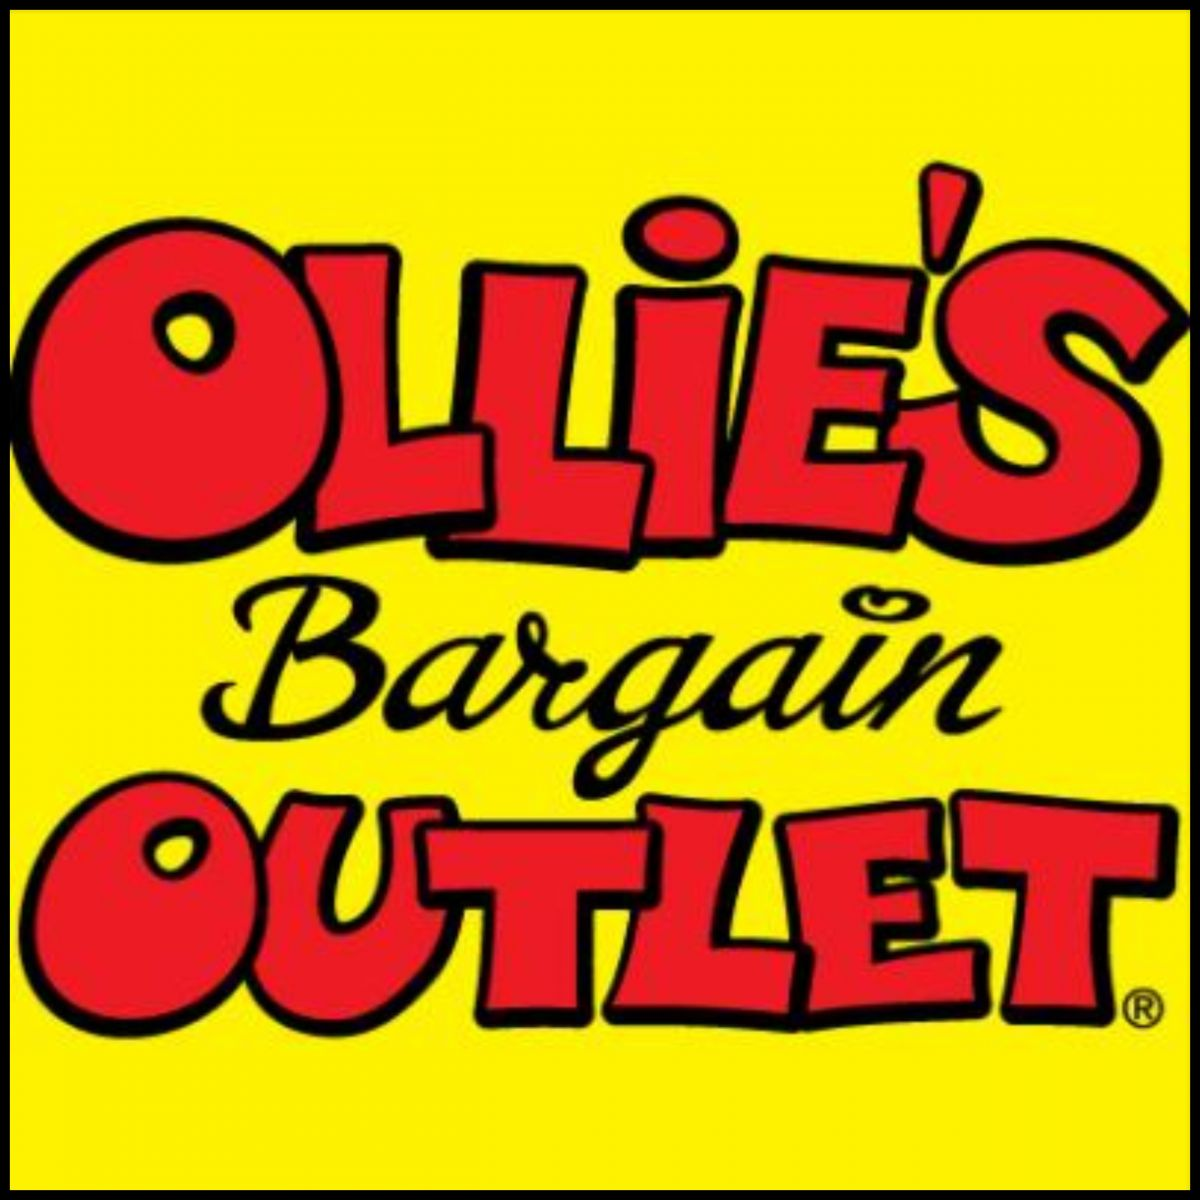 image of Ollies Bargain Outlet store logo